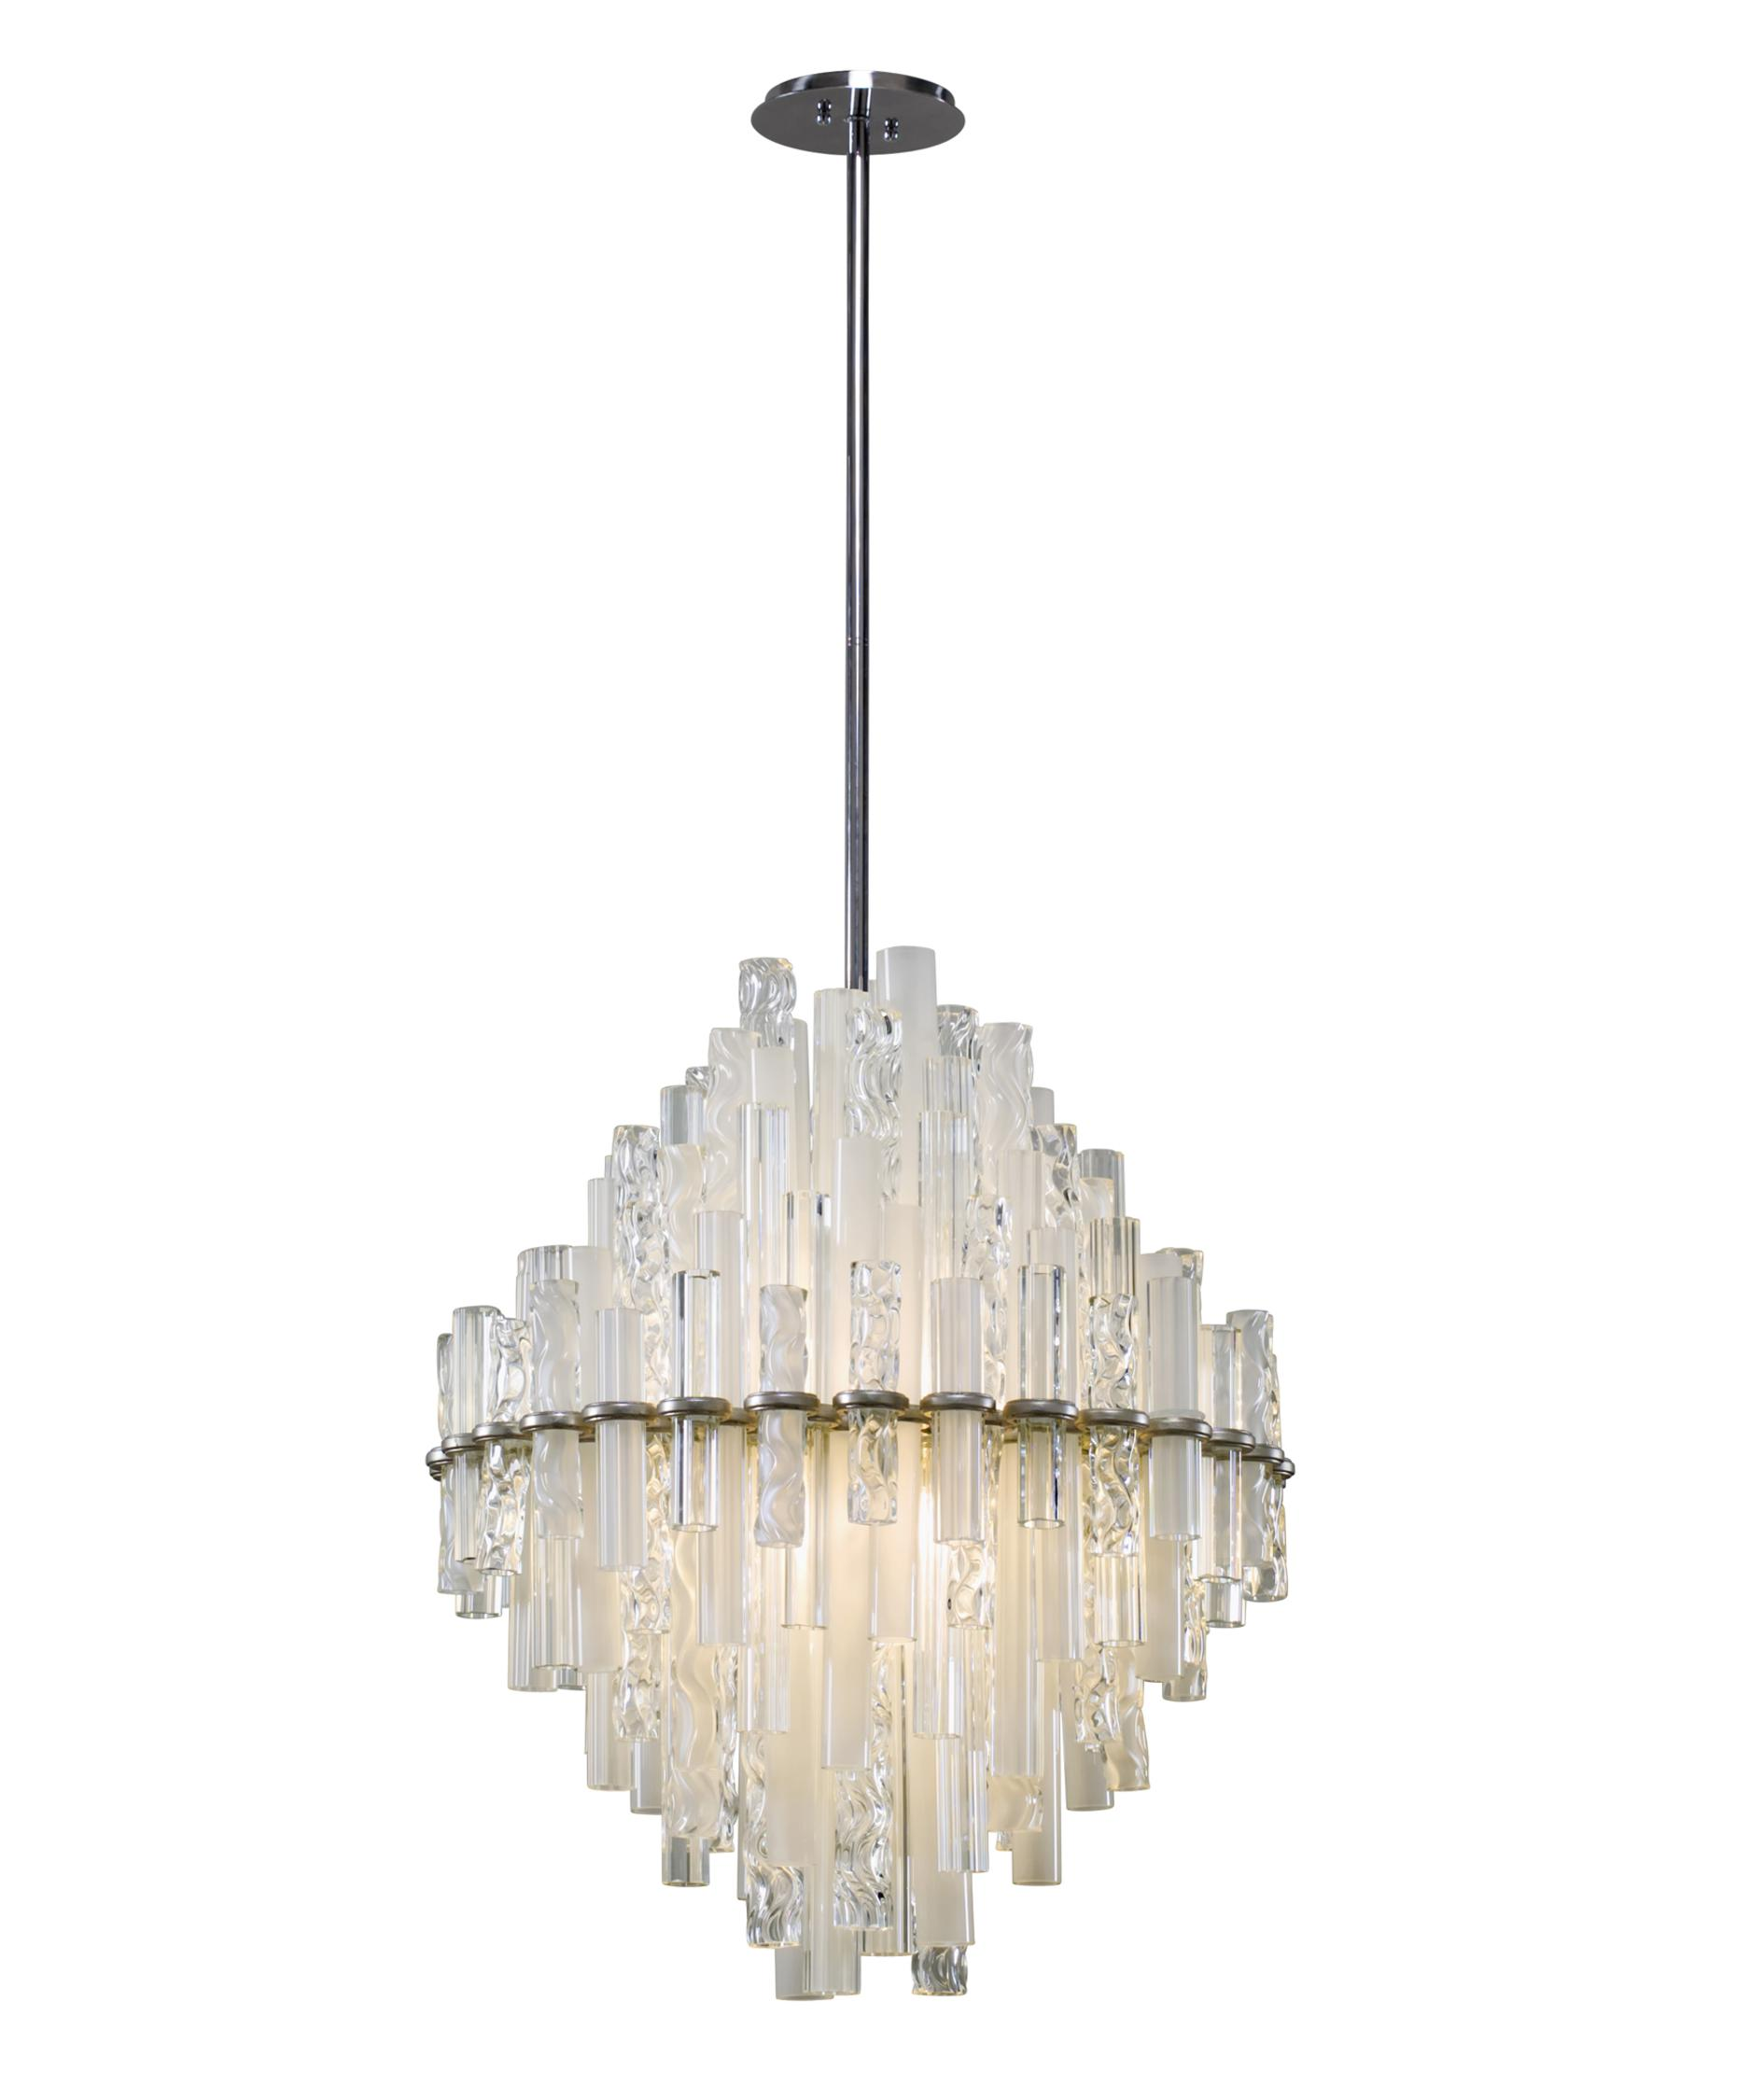 shown in satin silver leaf finish and clear and frosted glass - Corbett Lighting